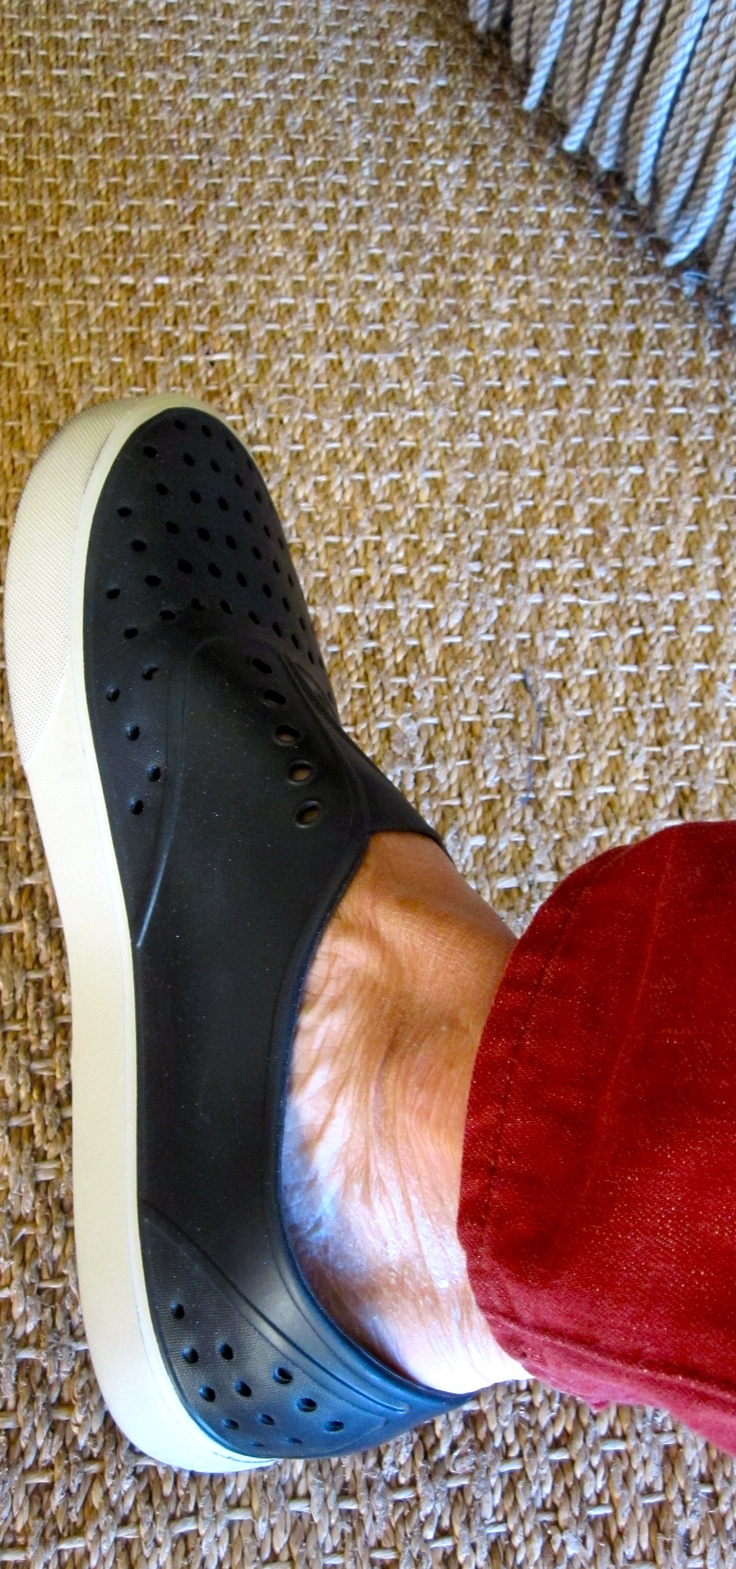 Native brand shoes for summer casual.